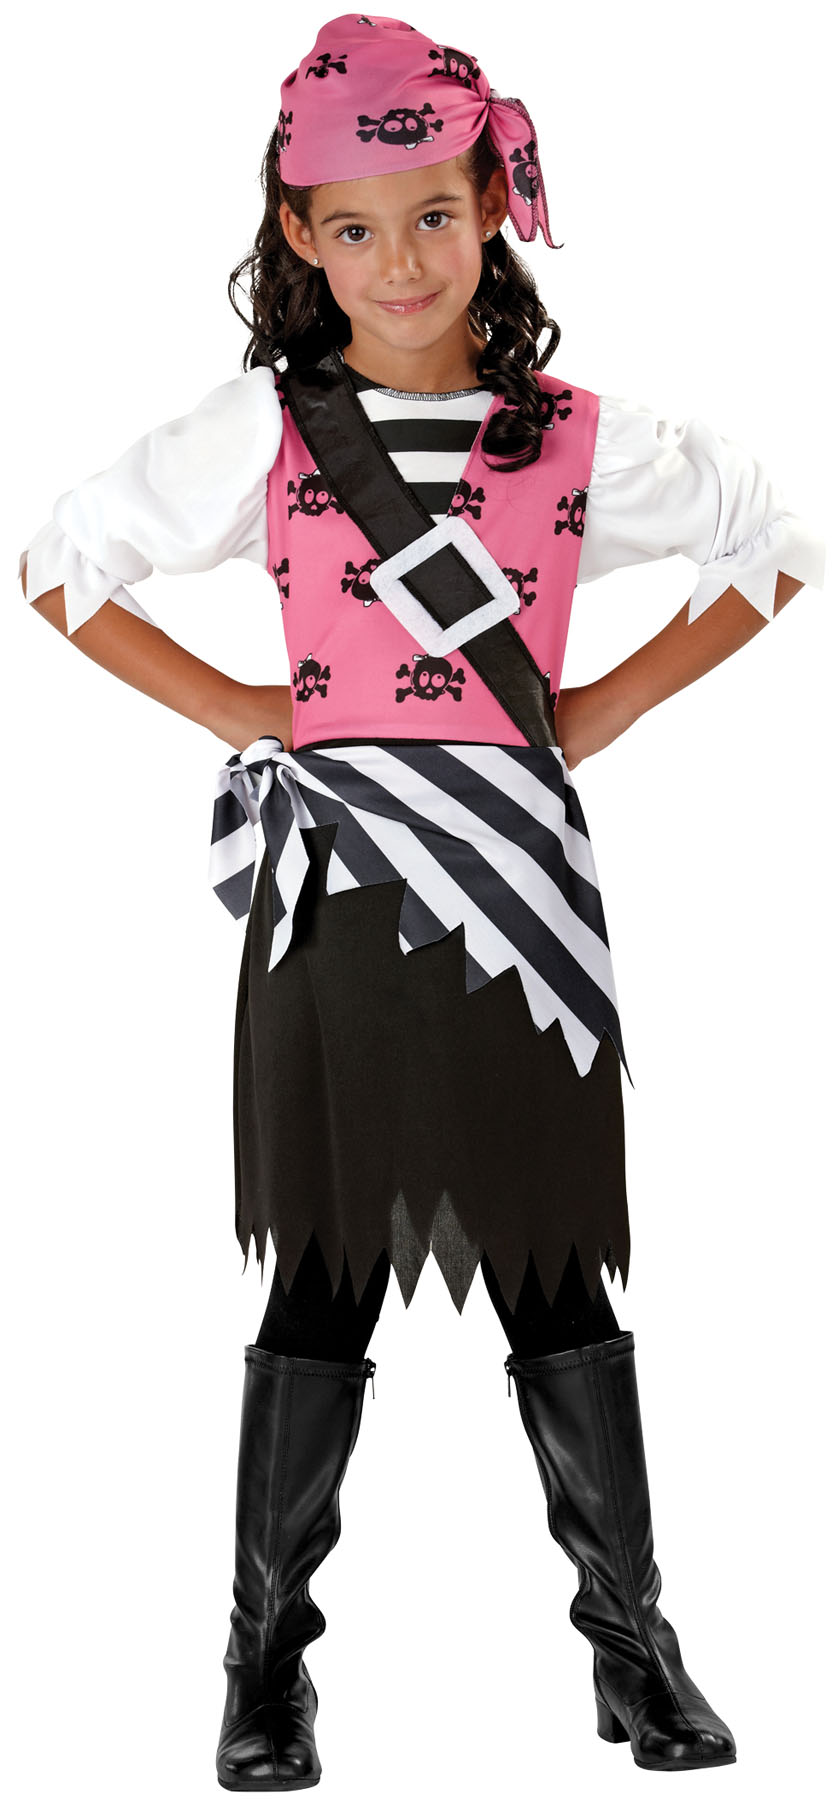 Seasons Halloween Punky Pirate Child 3pc Girl Costume, Black Pink by Seasons